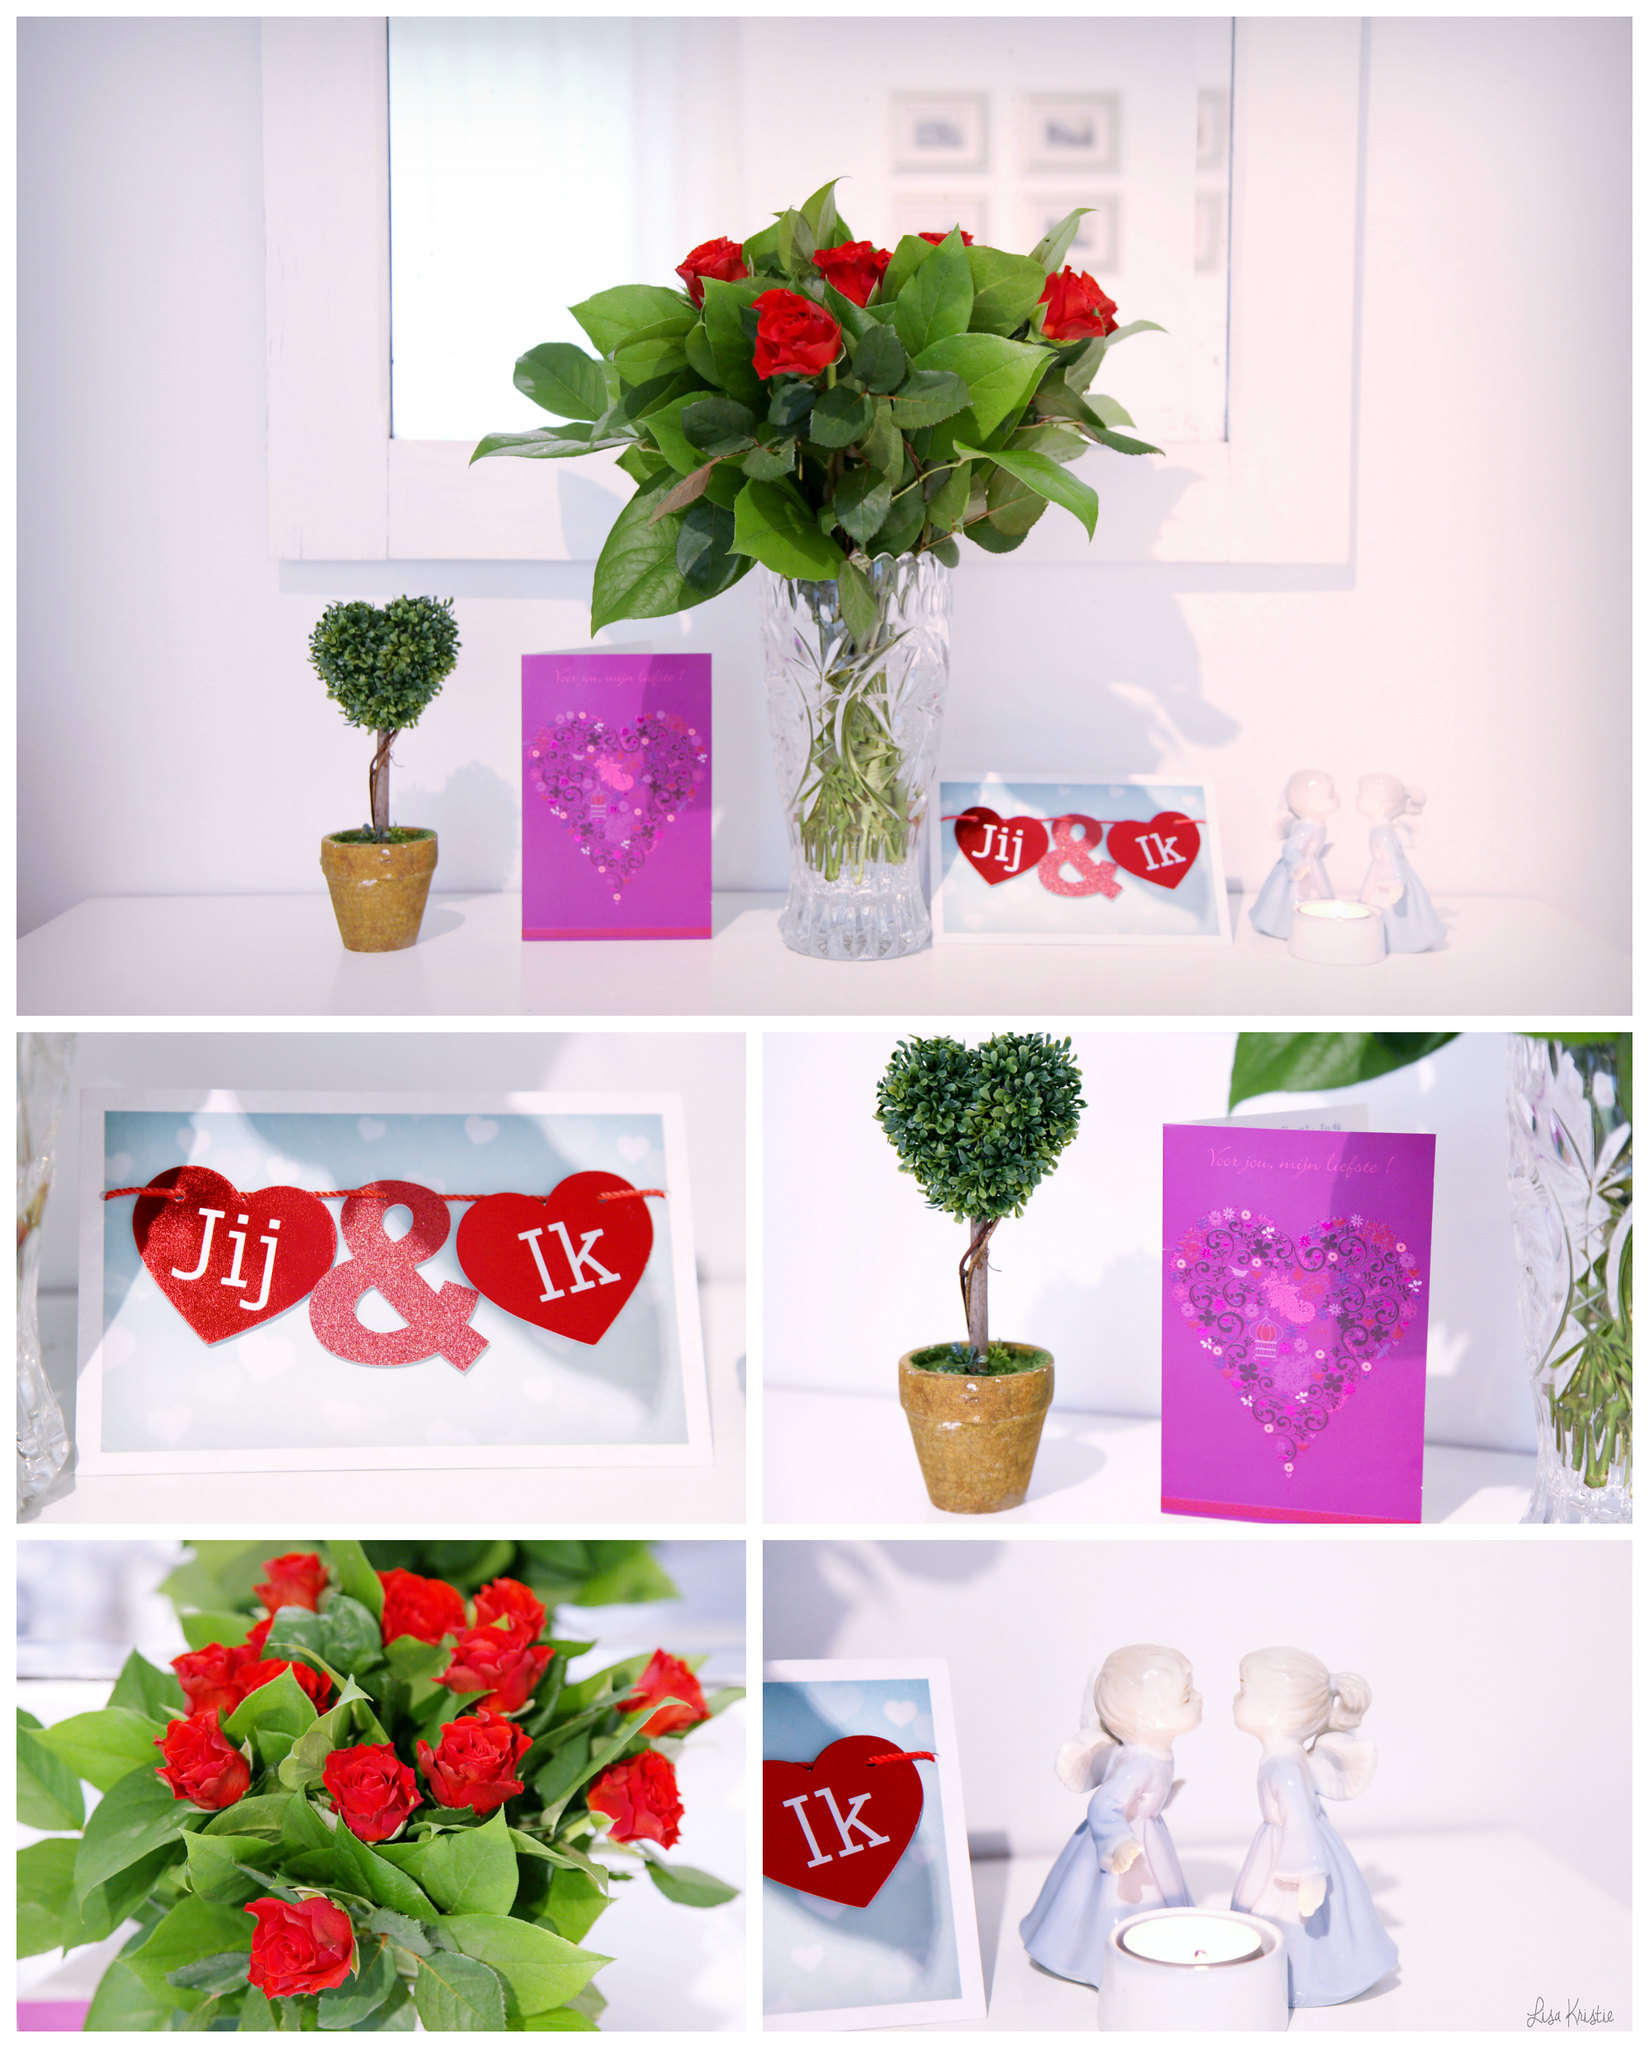 Valentine's Day 2016 red roses flowers cards dutch belgium romantic heart shaped plant decorative candle angels in love